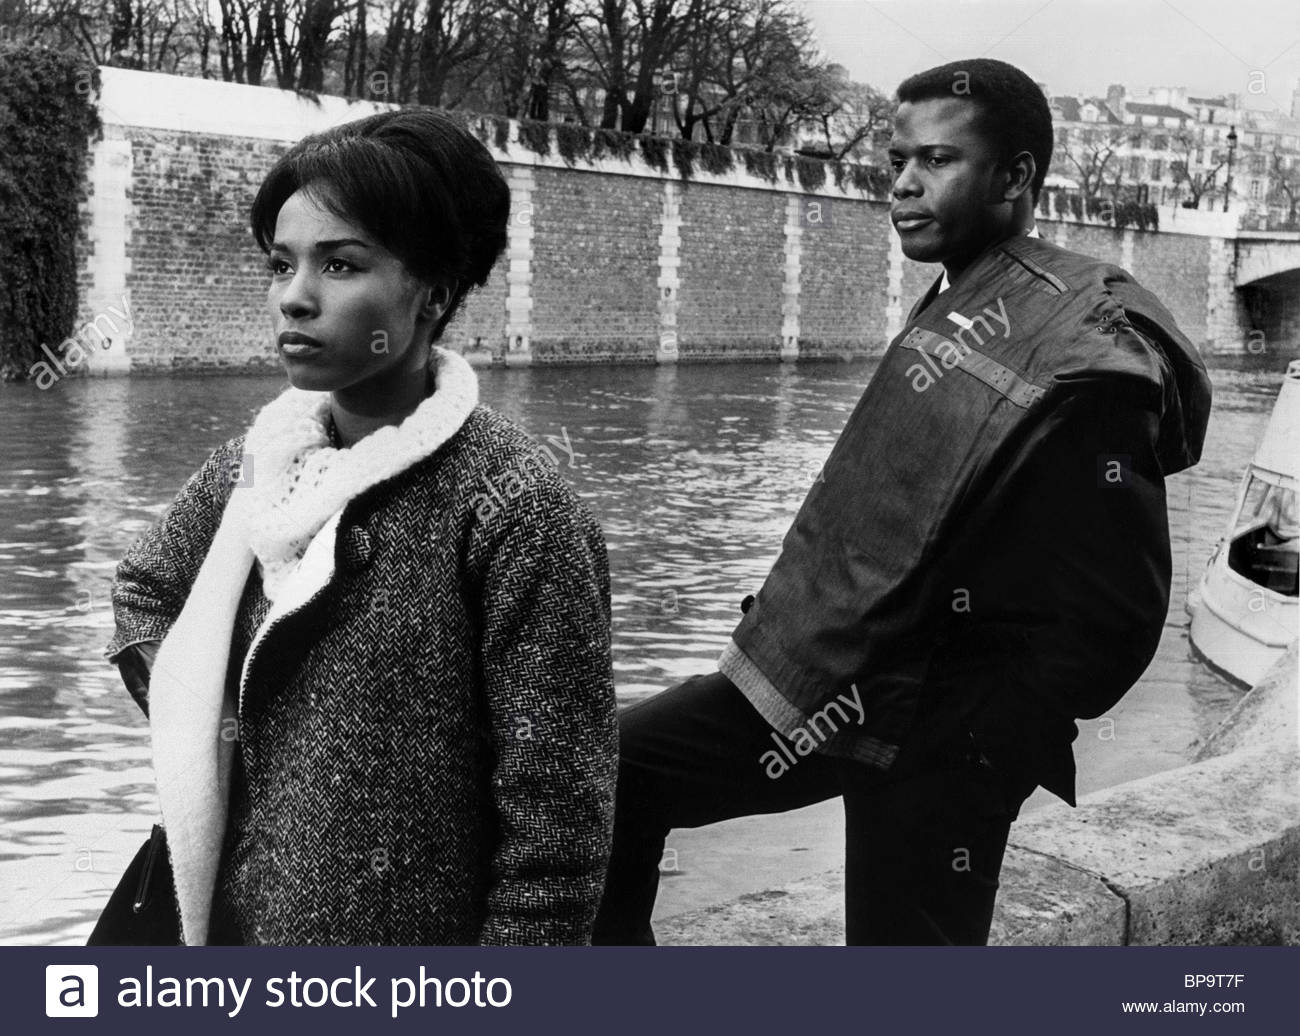 diahann-carroll-sidney-poitier-paris-blues-1961-bp9t7f.jpg